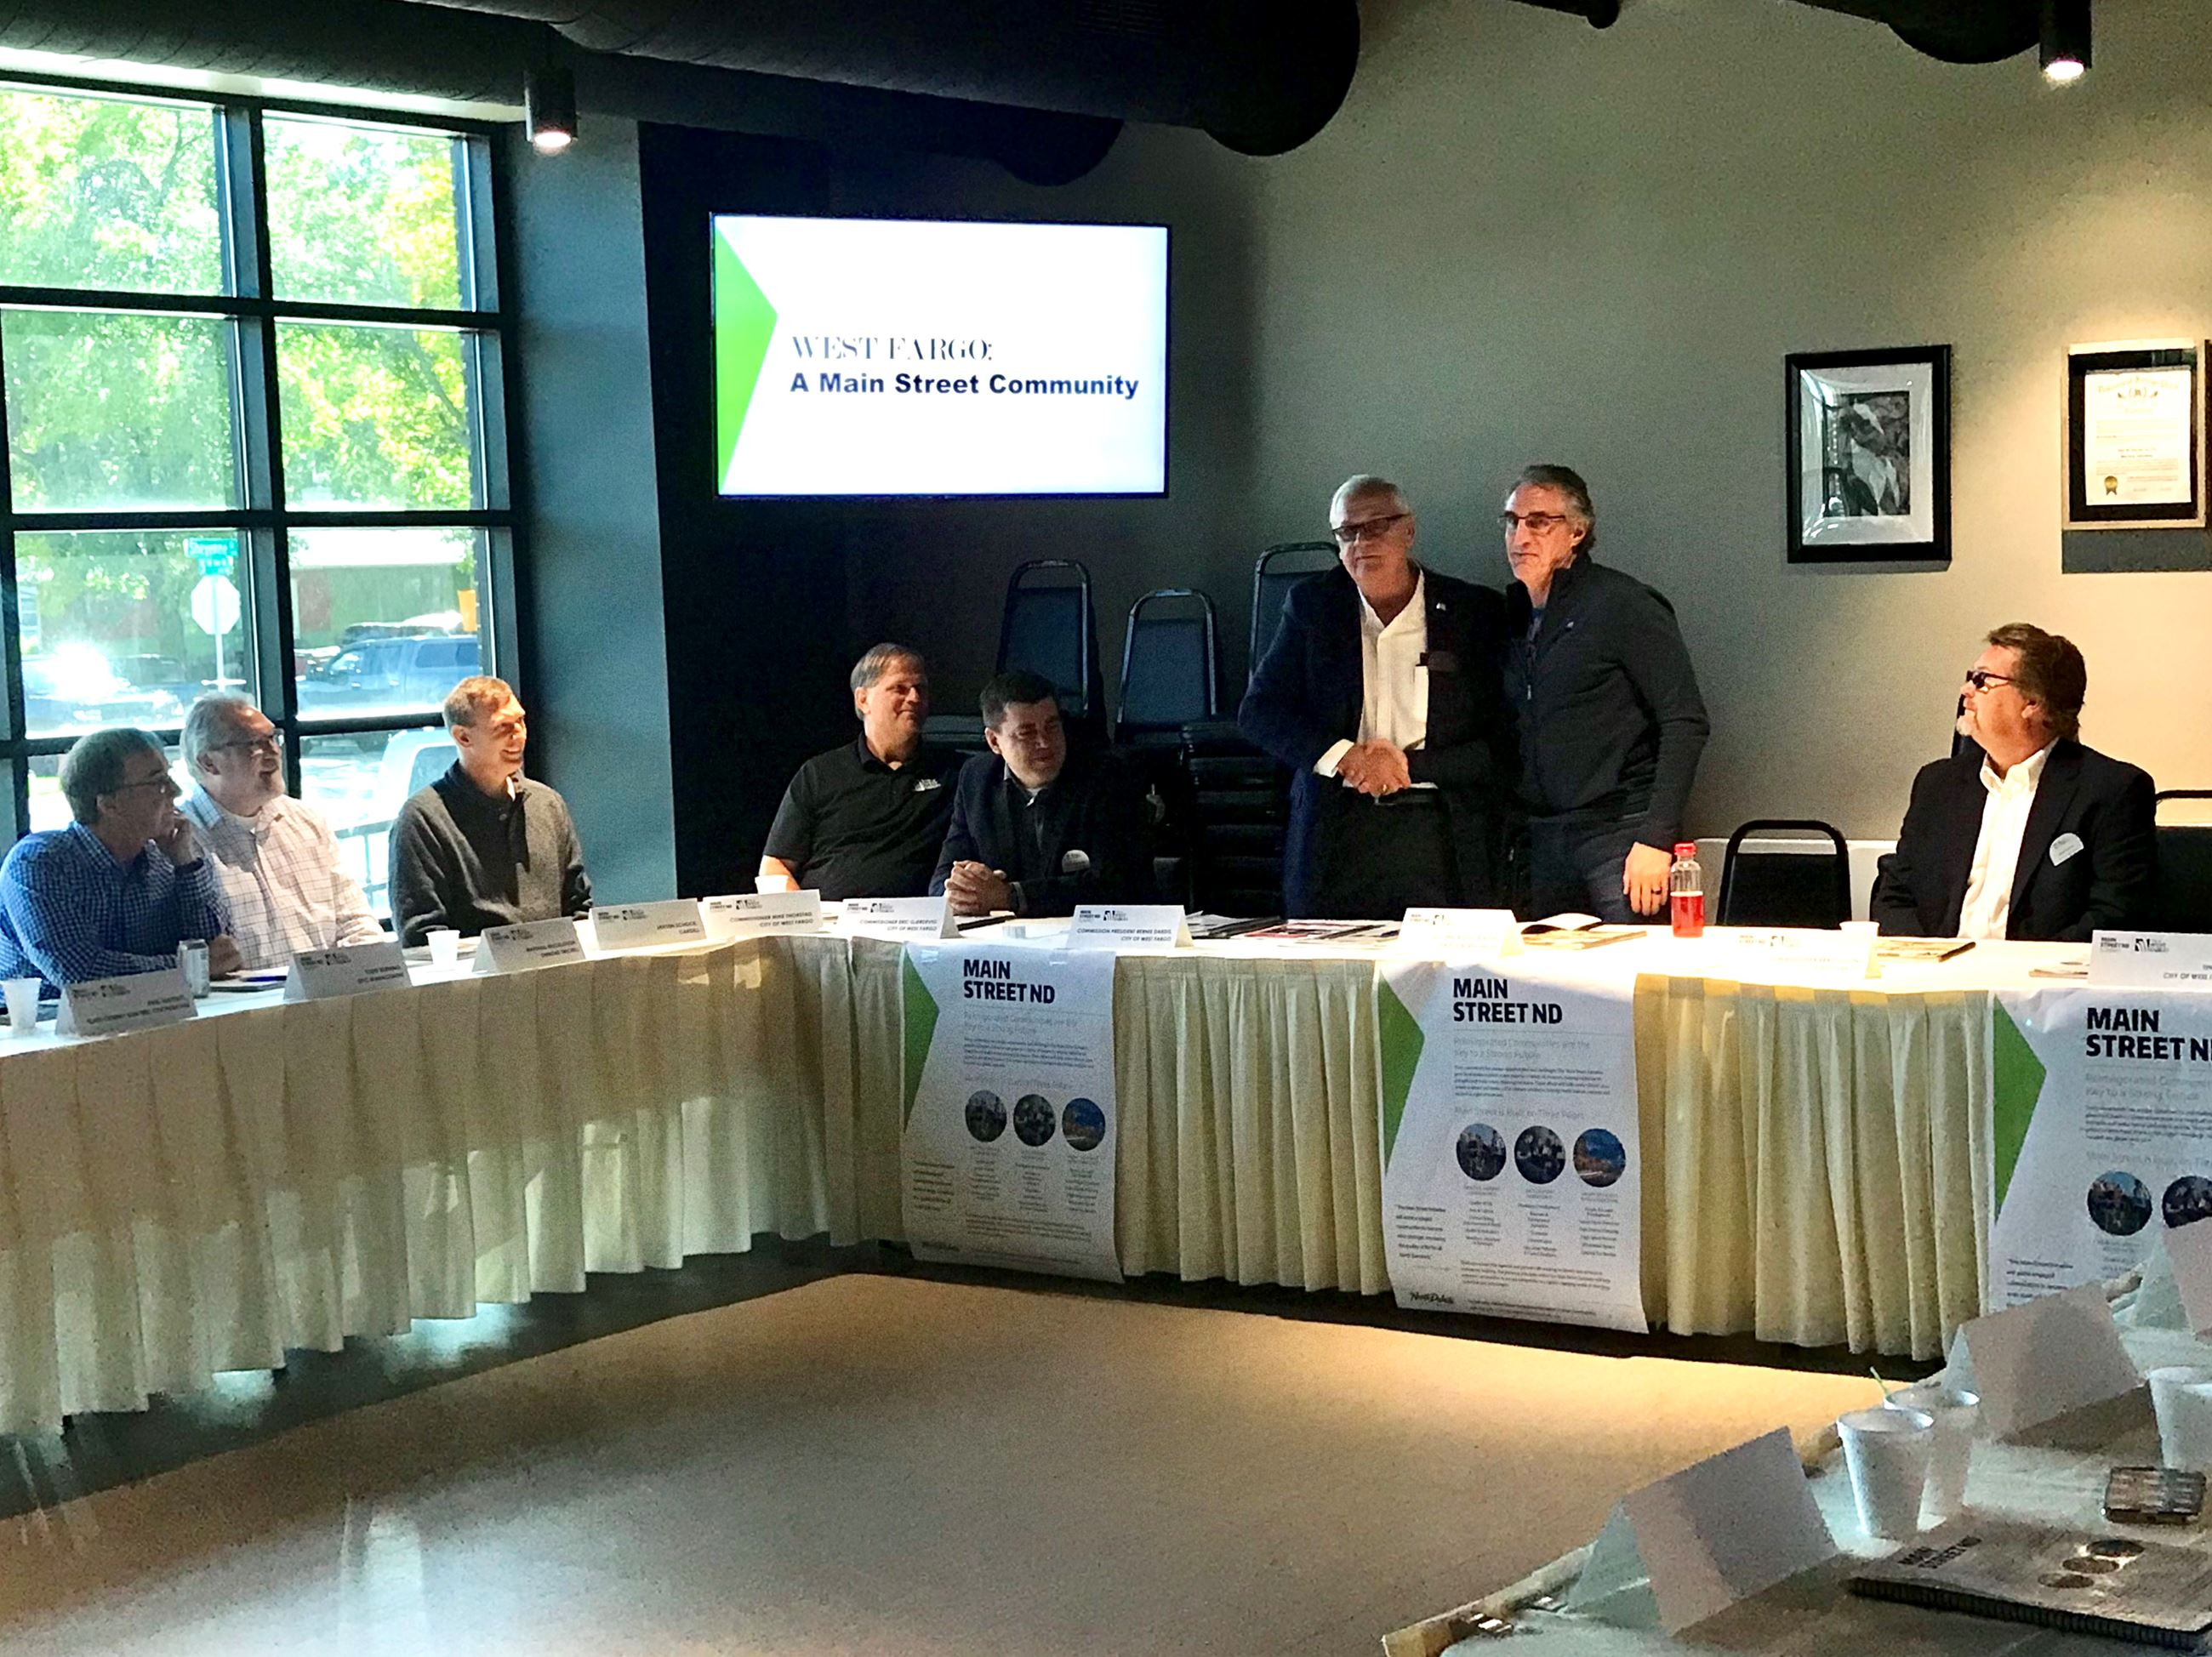 Commission President Bernie Dardis and North Dakota Governor Doug Burgum host a Main Street Summit i